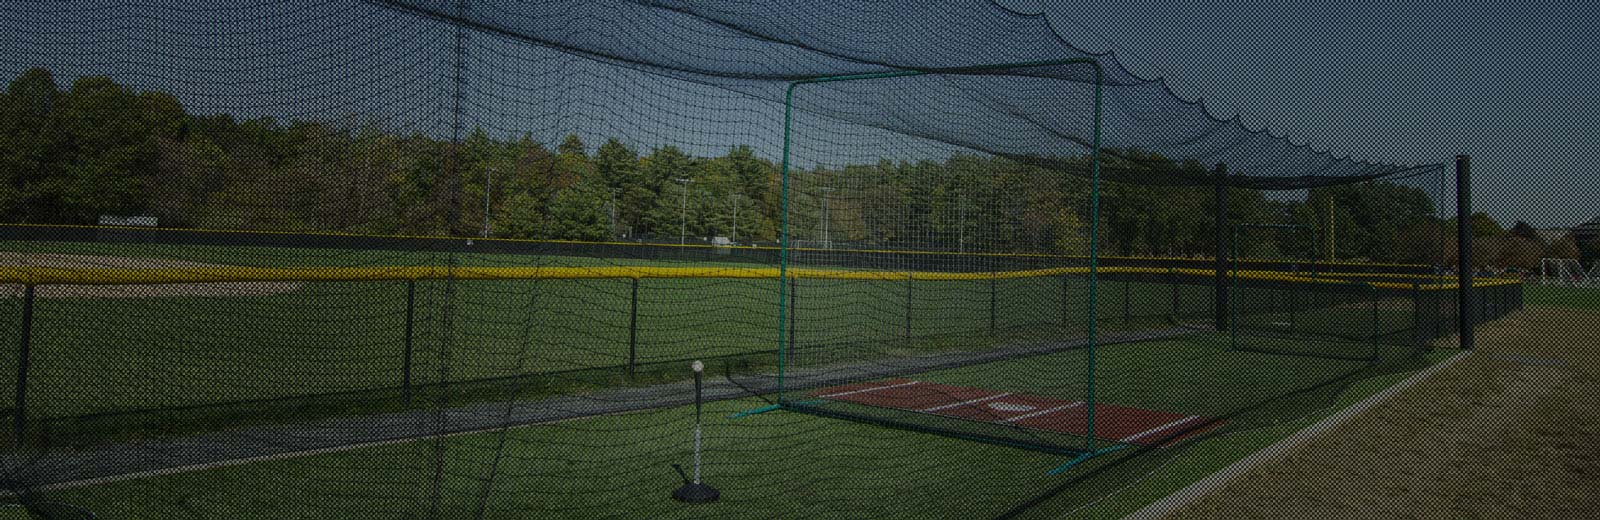 Outdoor Batting Cage For Baseball Amp Softball On Deck Sports